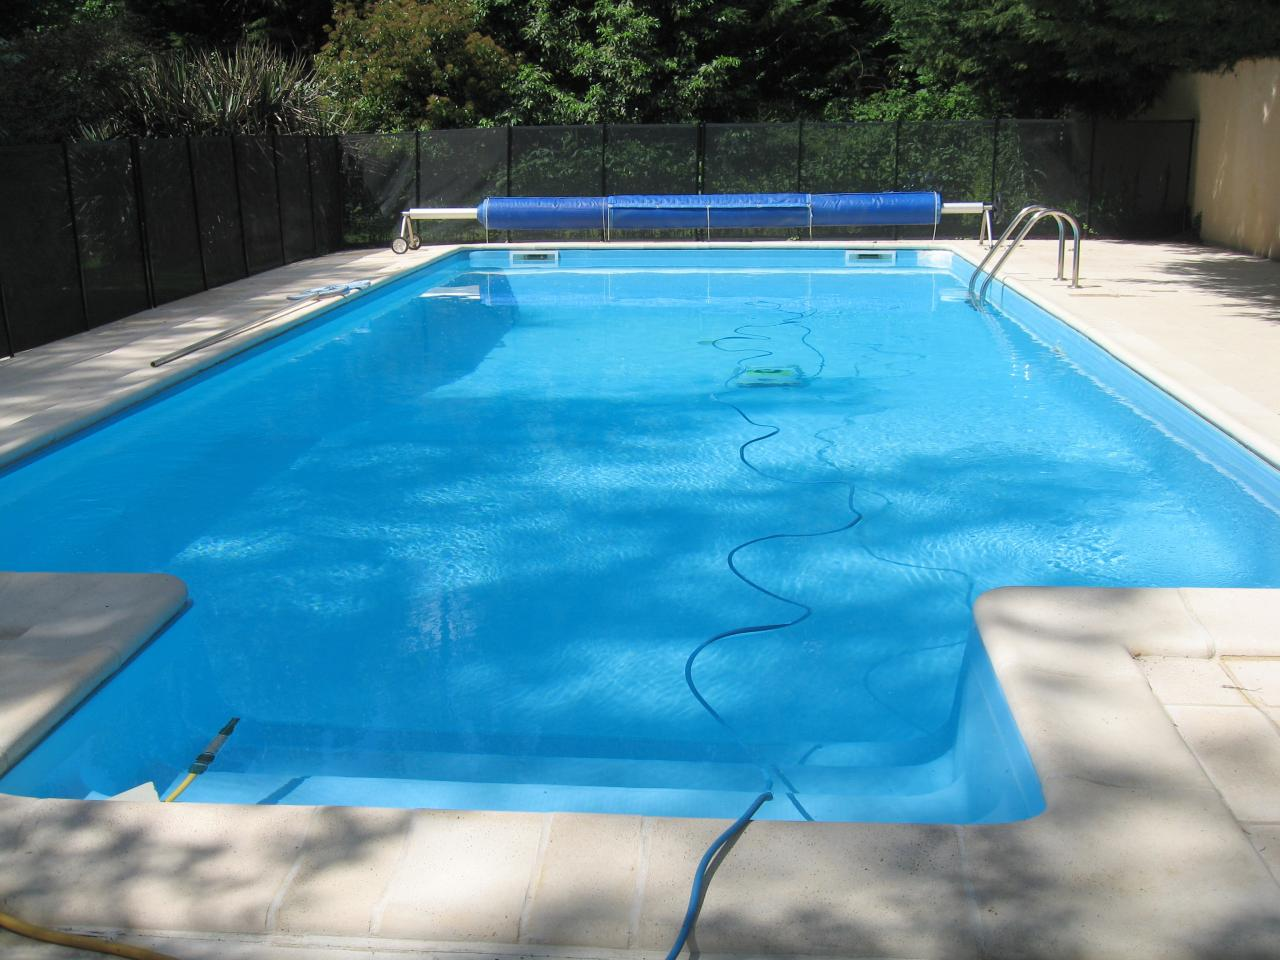 David sefton bas etang for sale swimming pool for Pool plans for sale